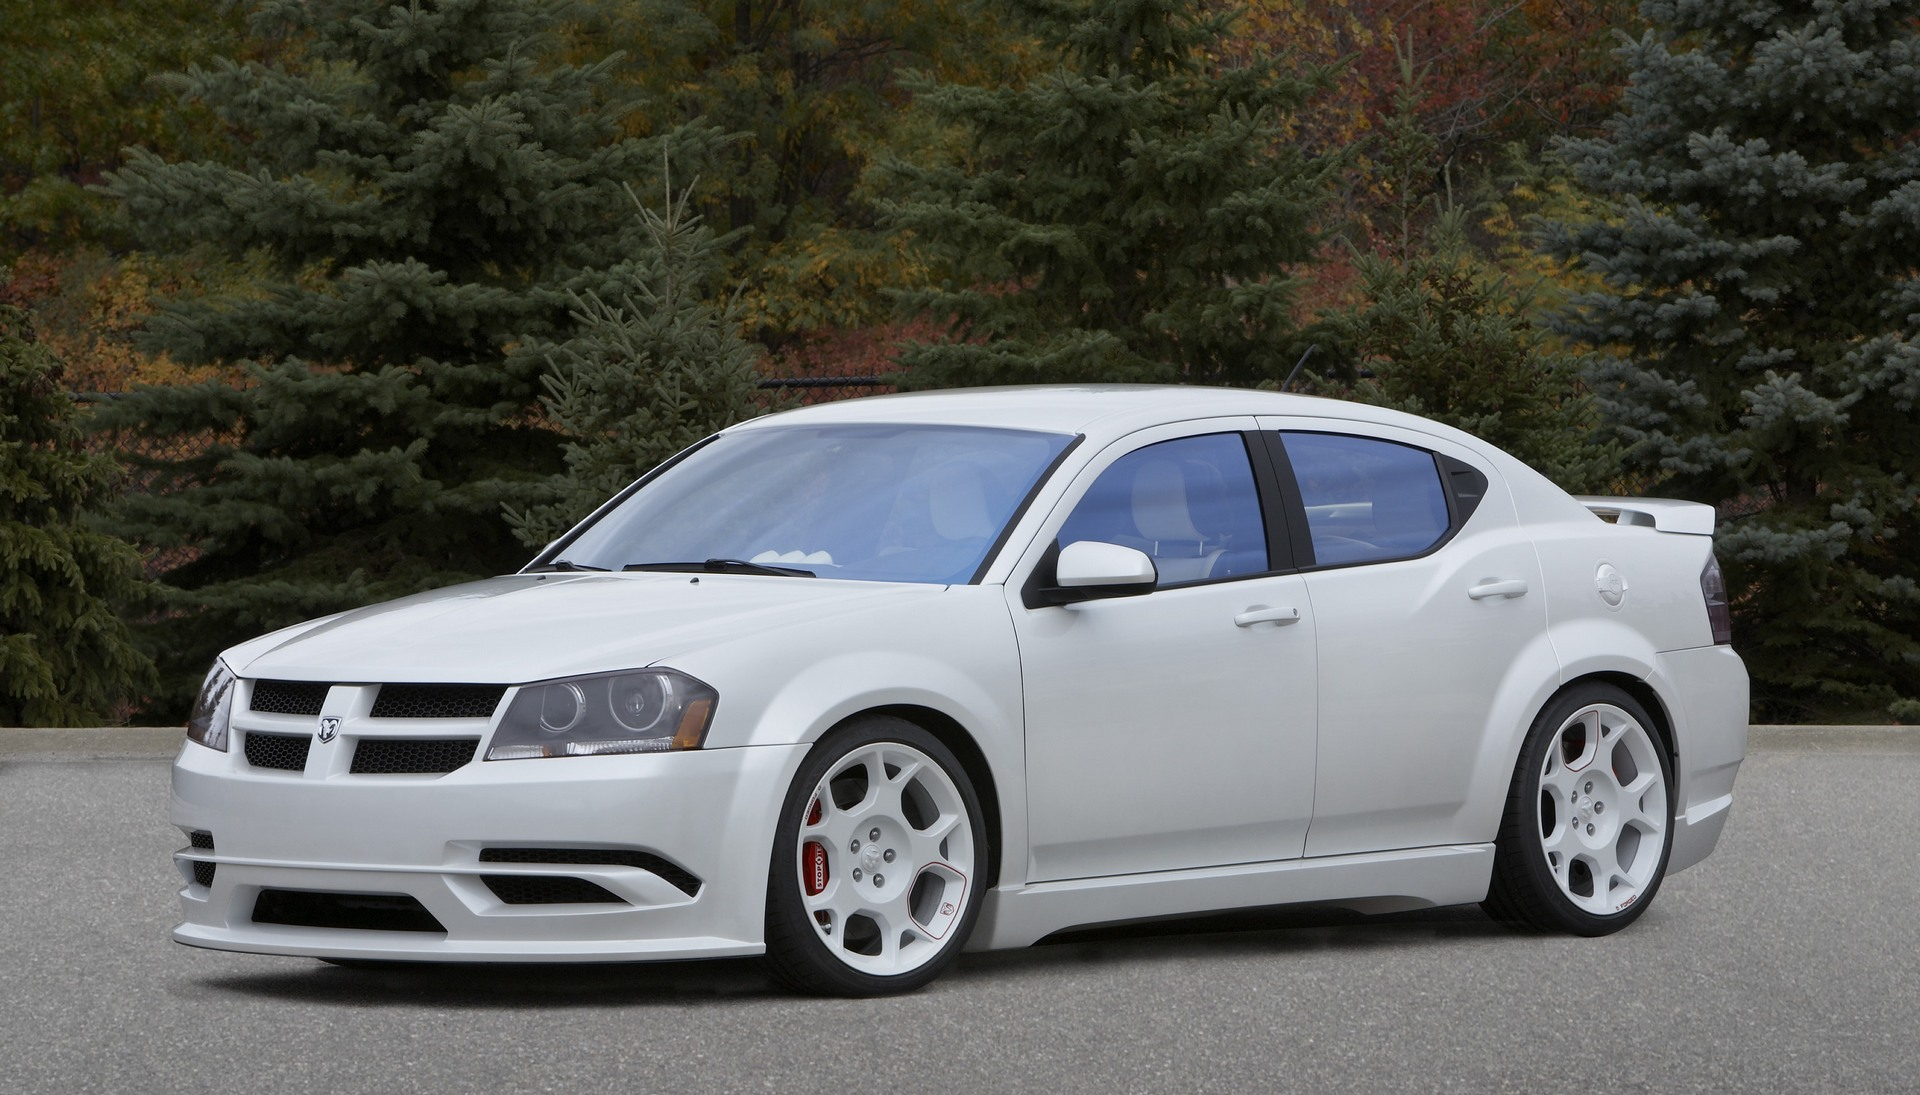 2008 dodge avenger stormtrooper concept pictures news. Black Bedroom Furniture Sets. Home Design Ideas